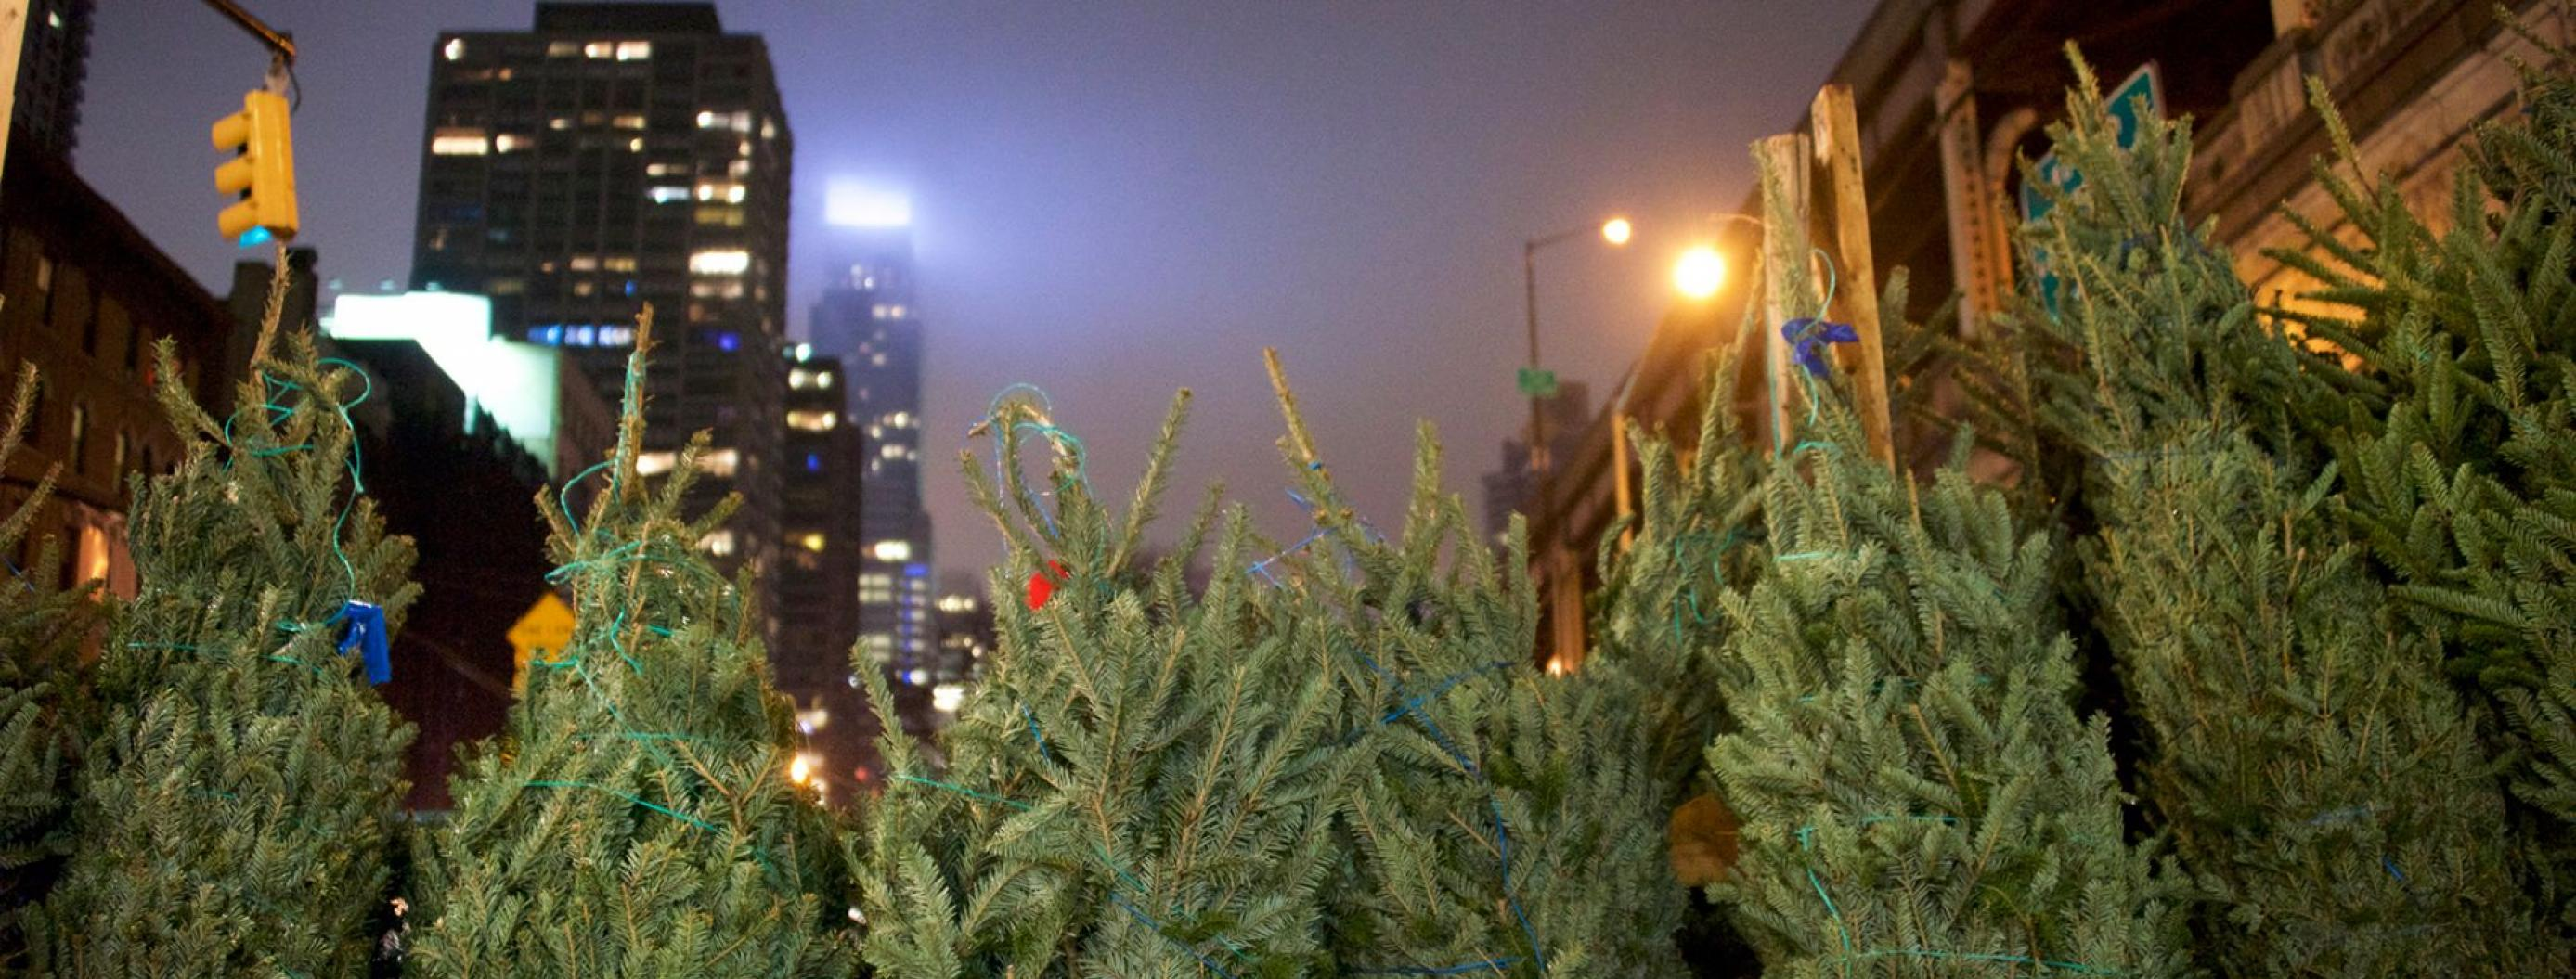 Amazon Plans to Sell and Ship Real Christmas Trees This Year